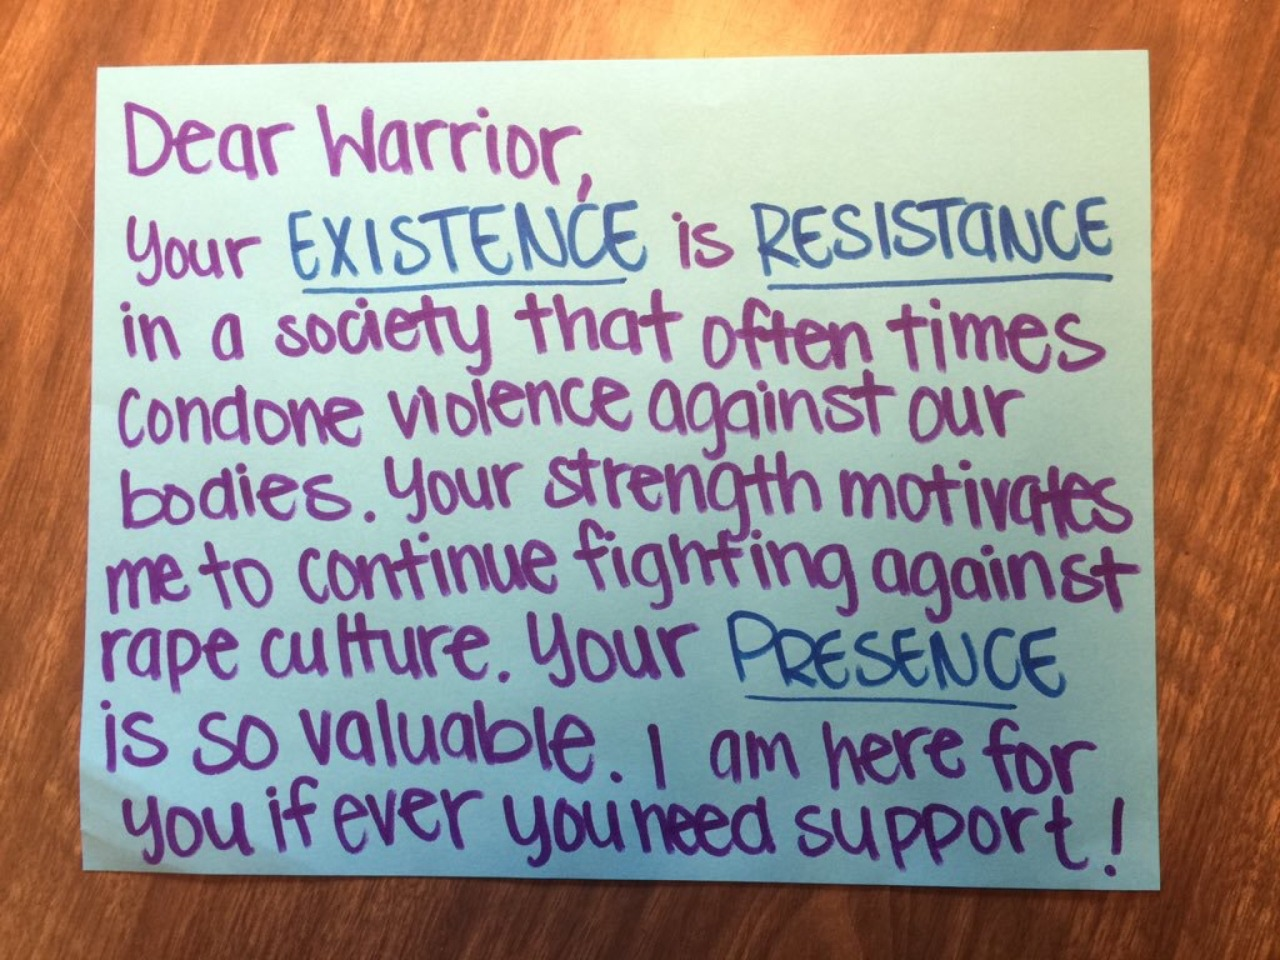 Dear Warrior,  Your EXISTENCE is RESISTANCE in a society that often times condones violence against our bodies. Your strength motivates me to continue fighting against rape culture. Your PRESENCE is so valuable. I am here for you if ever you need support!